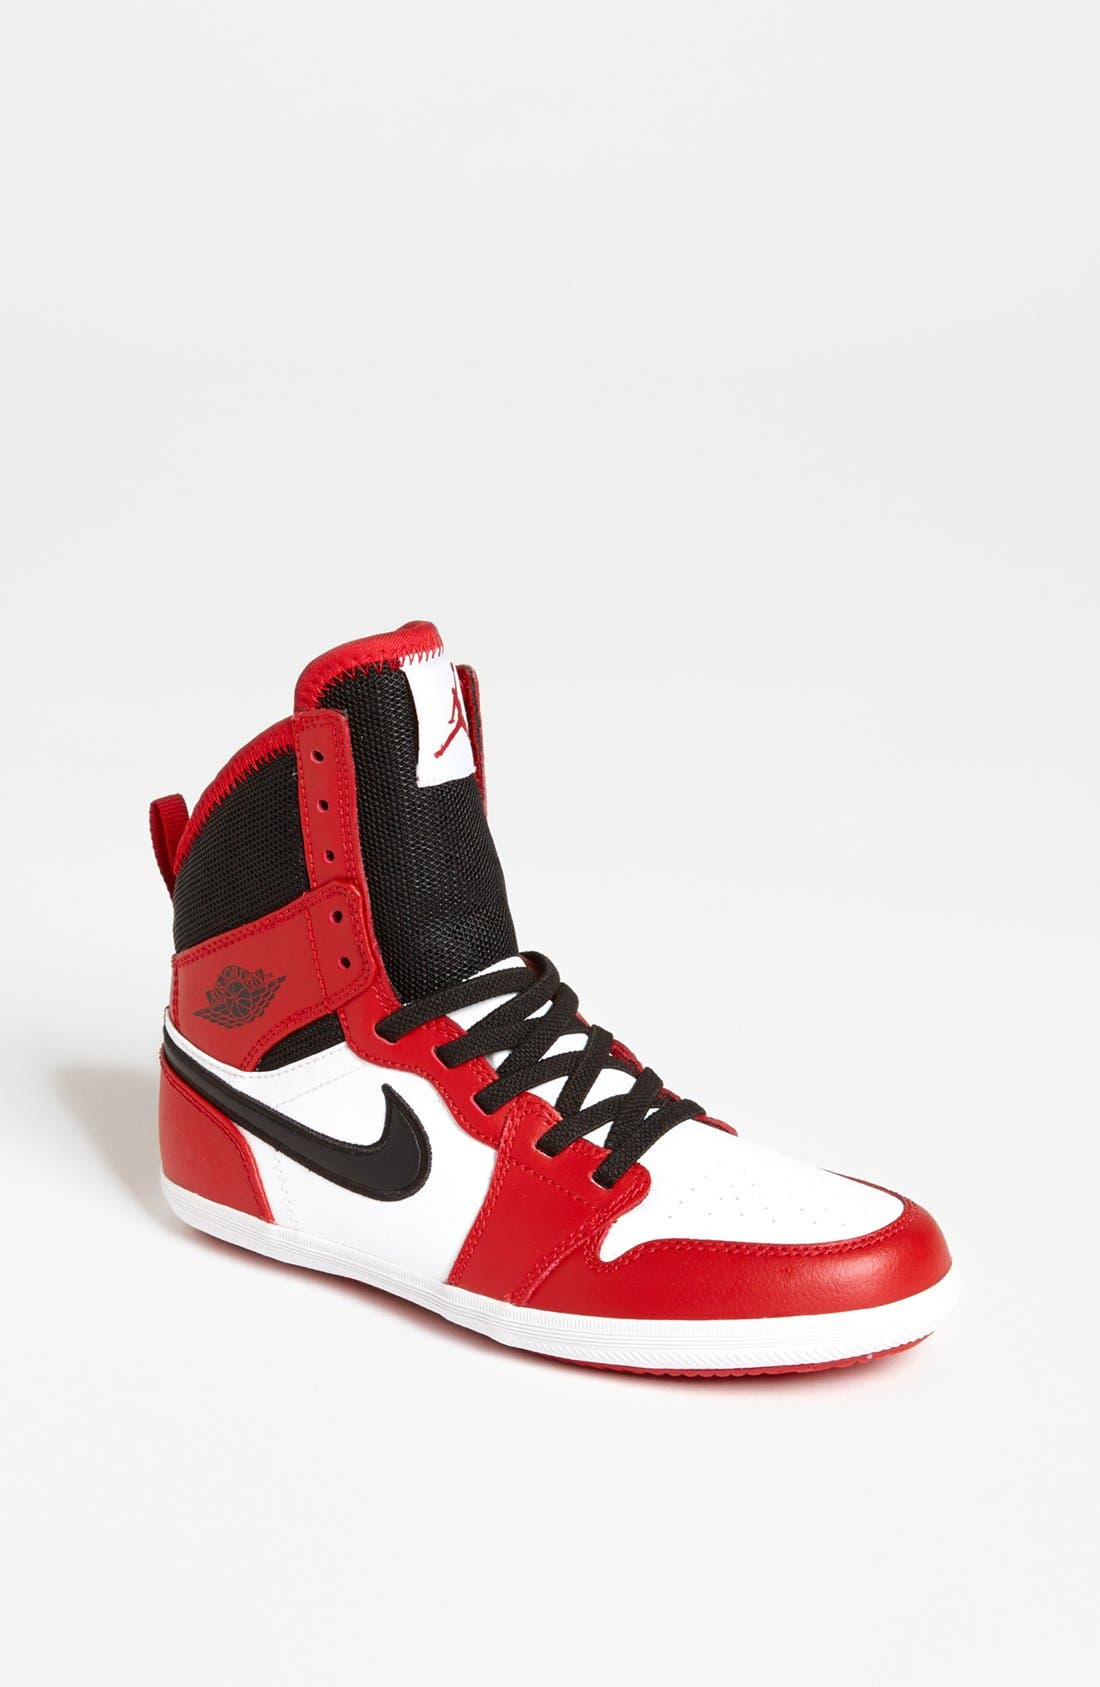 Main Image - Nike 'Jordan 1 Skinny High' Sneaker (Big Kid)